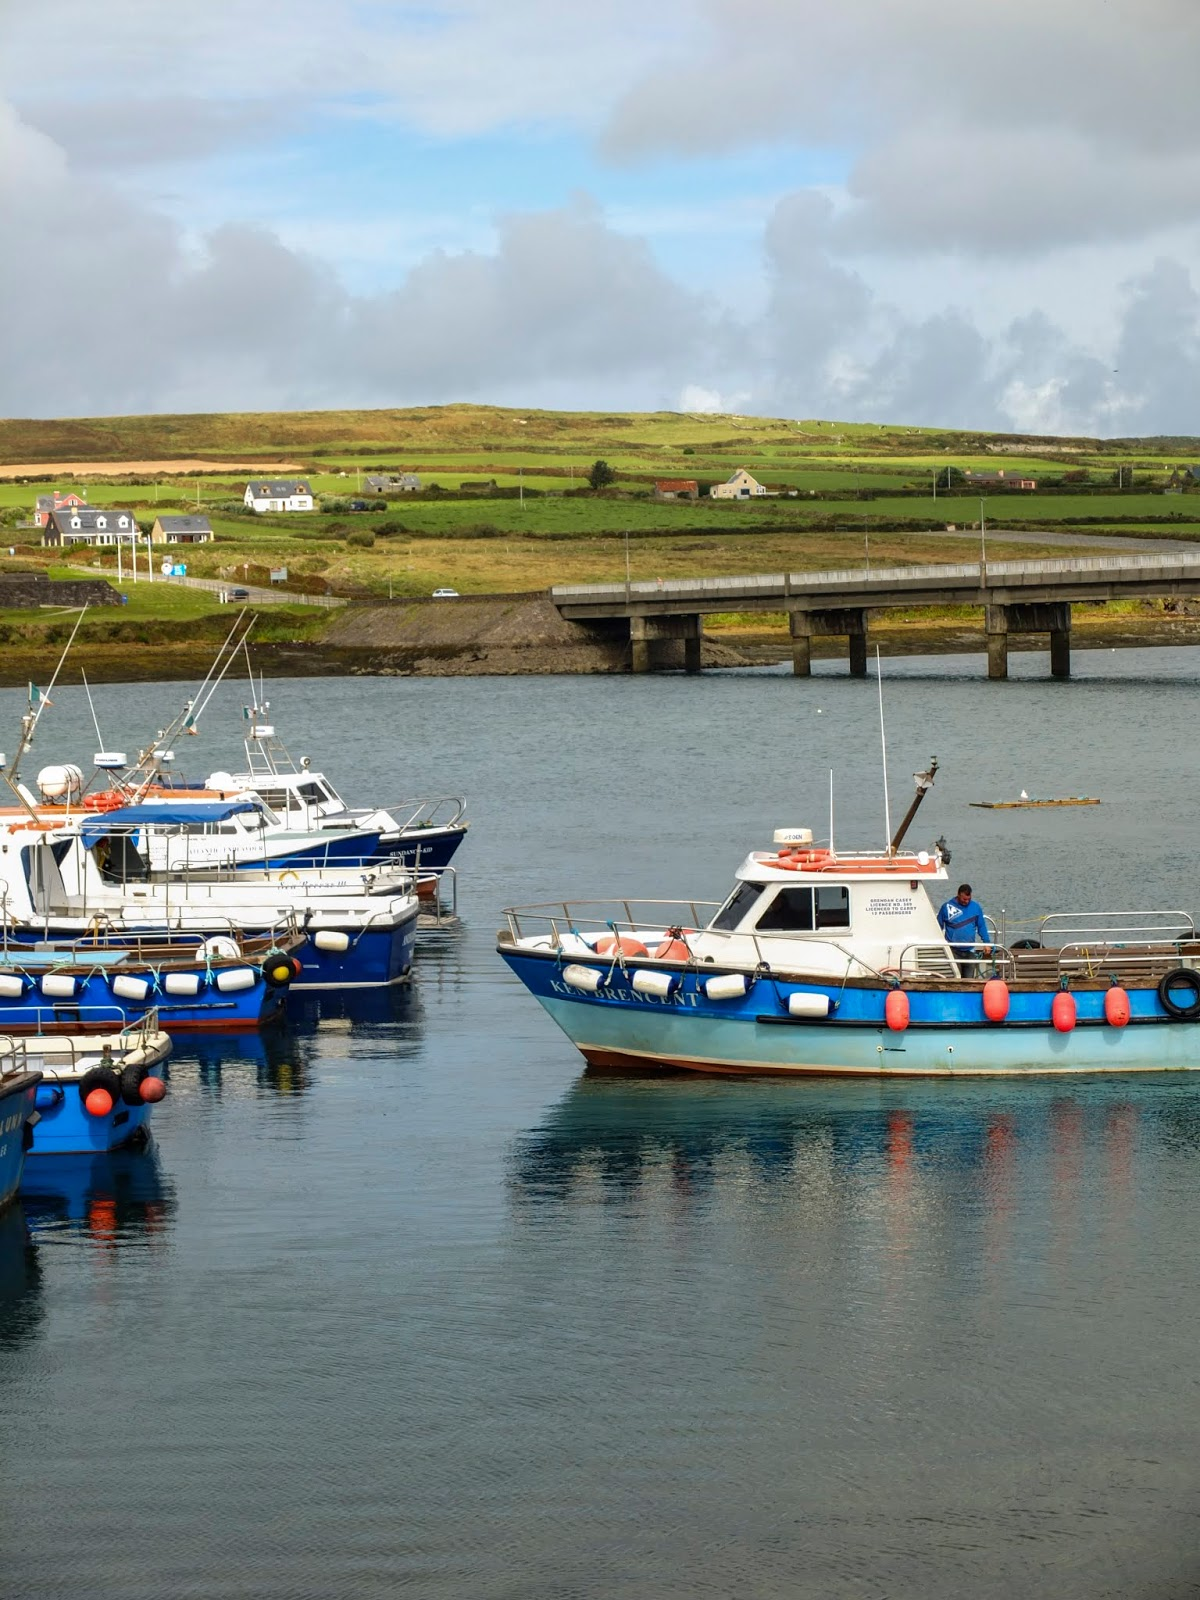 Sun shining on blue and white boats moored in Portmagee, Co.Kerry